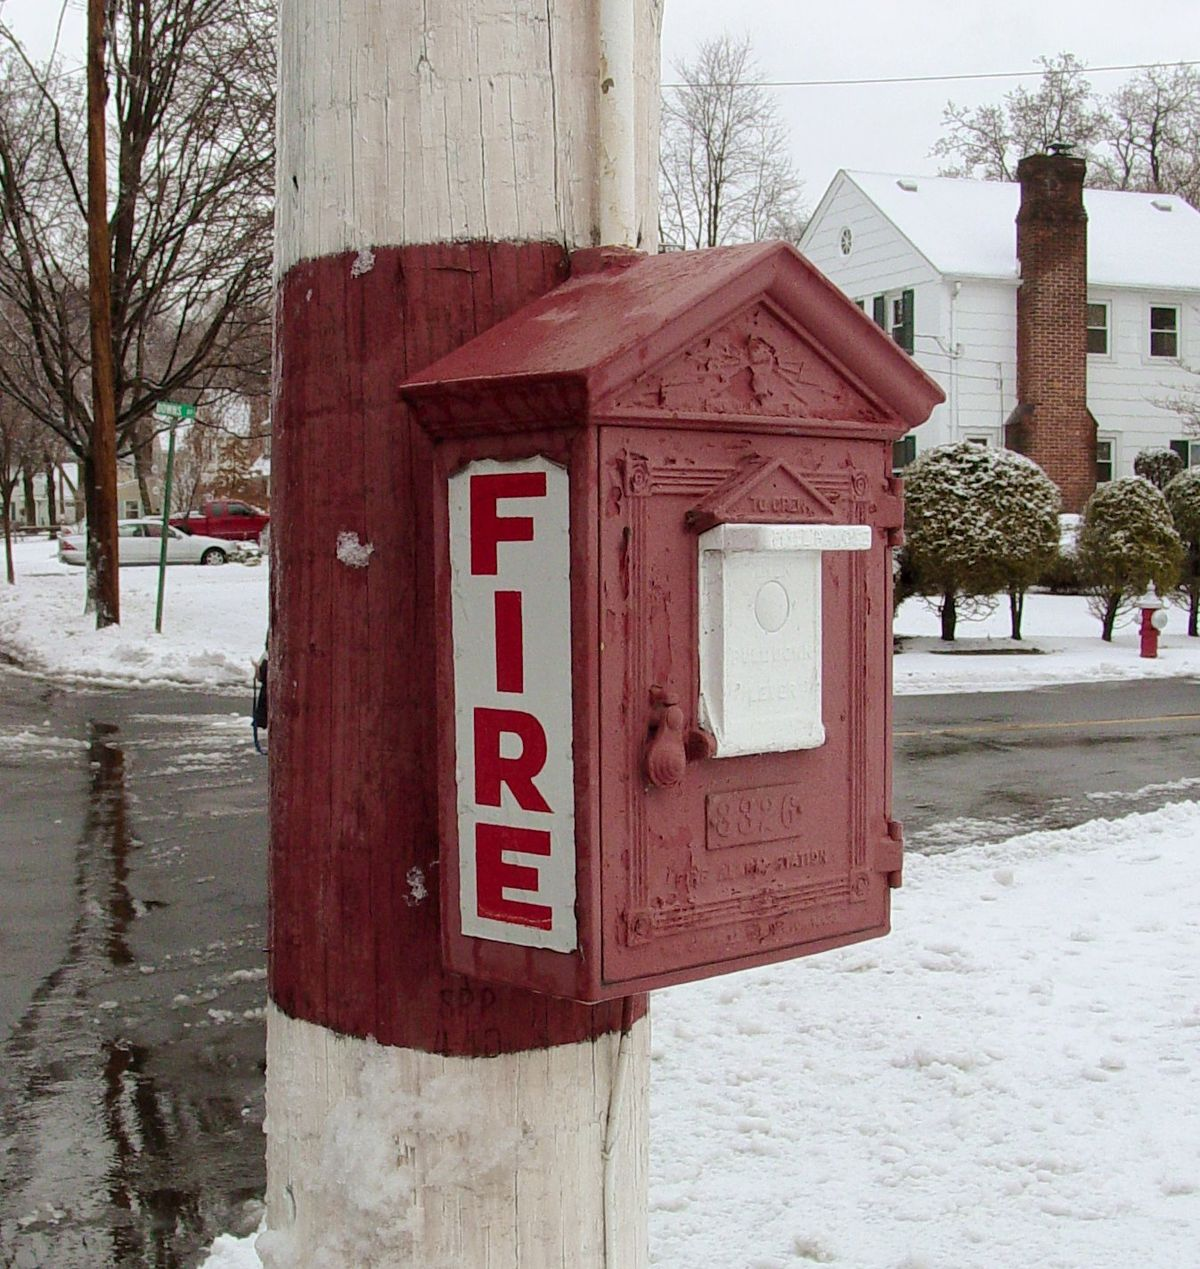 1200px Fire_alarm_in_Ridgewood%2C_New_Jersey fire alarm call box wikipedia gamewell fire alarm box wiring diagram at edmiracle.co